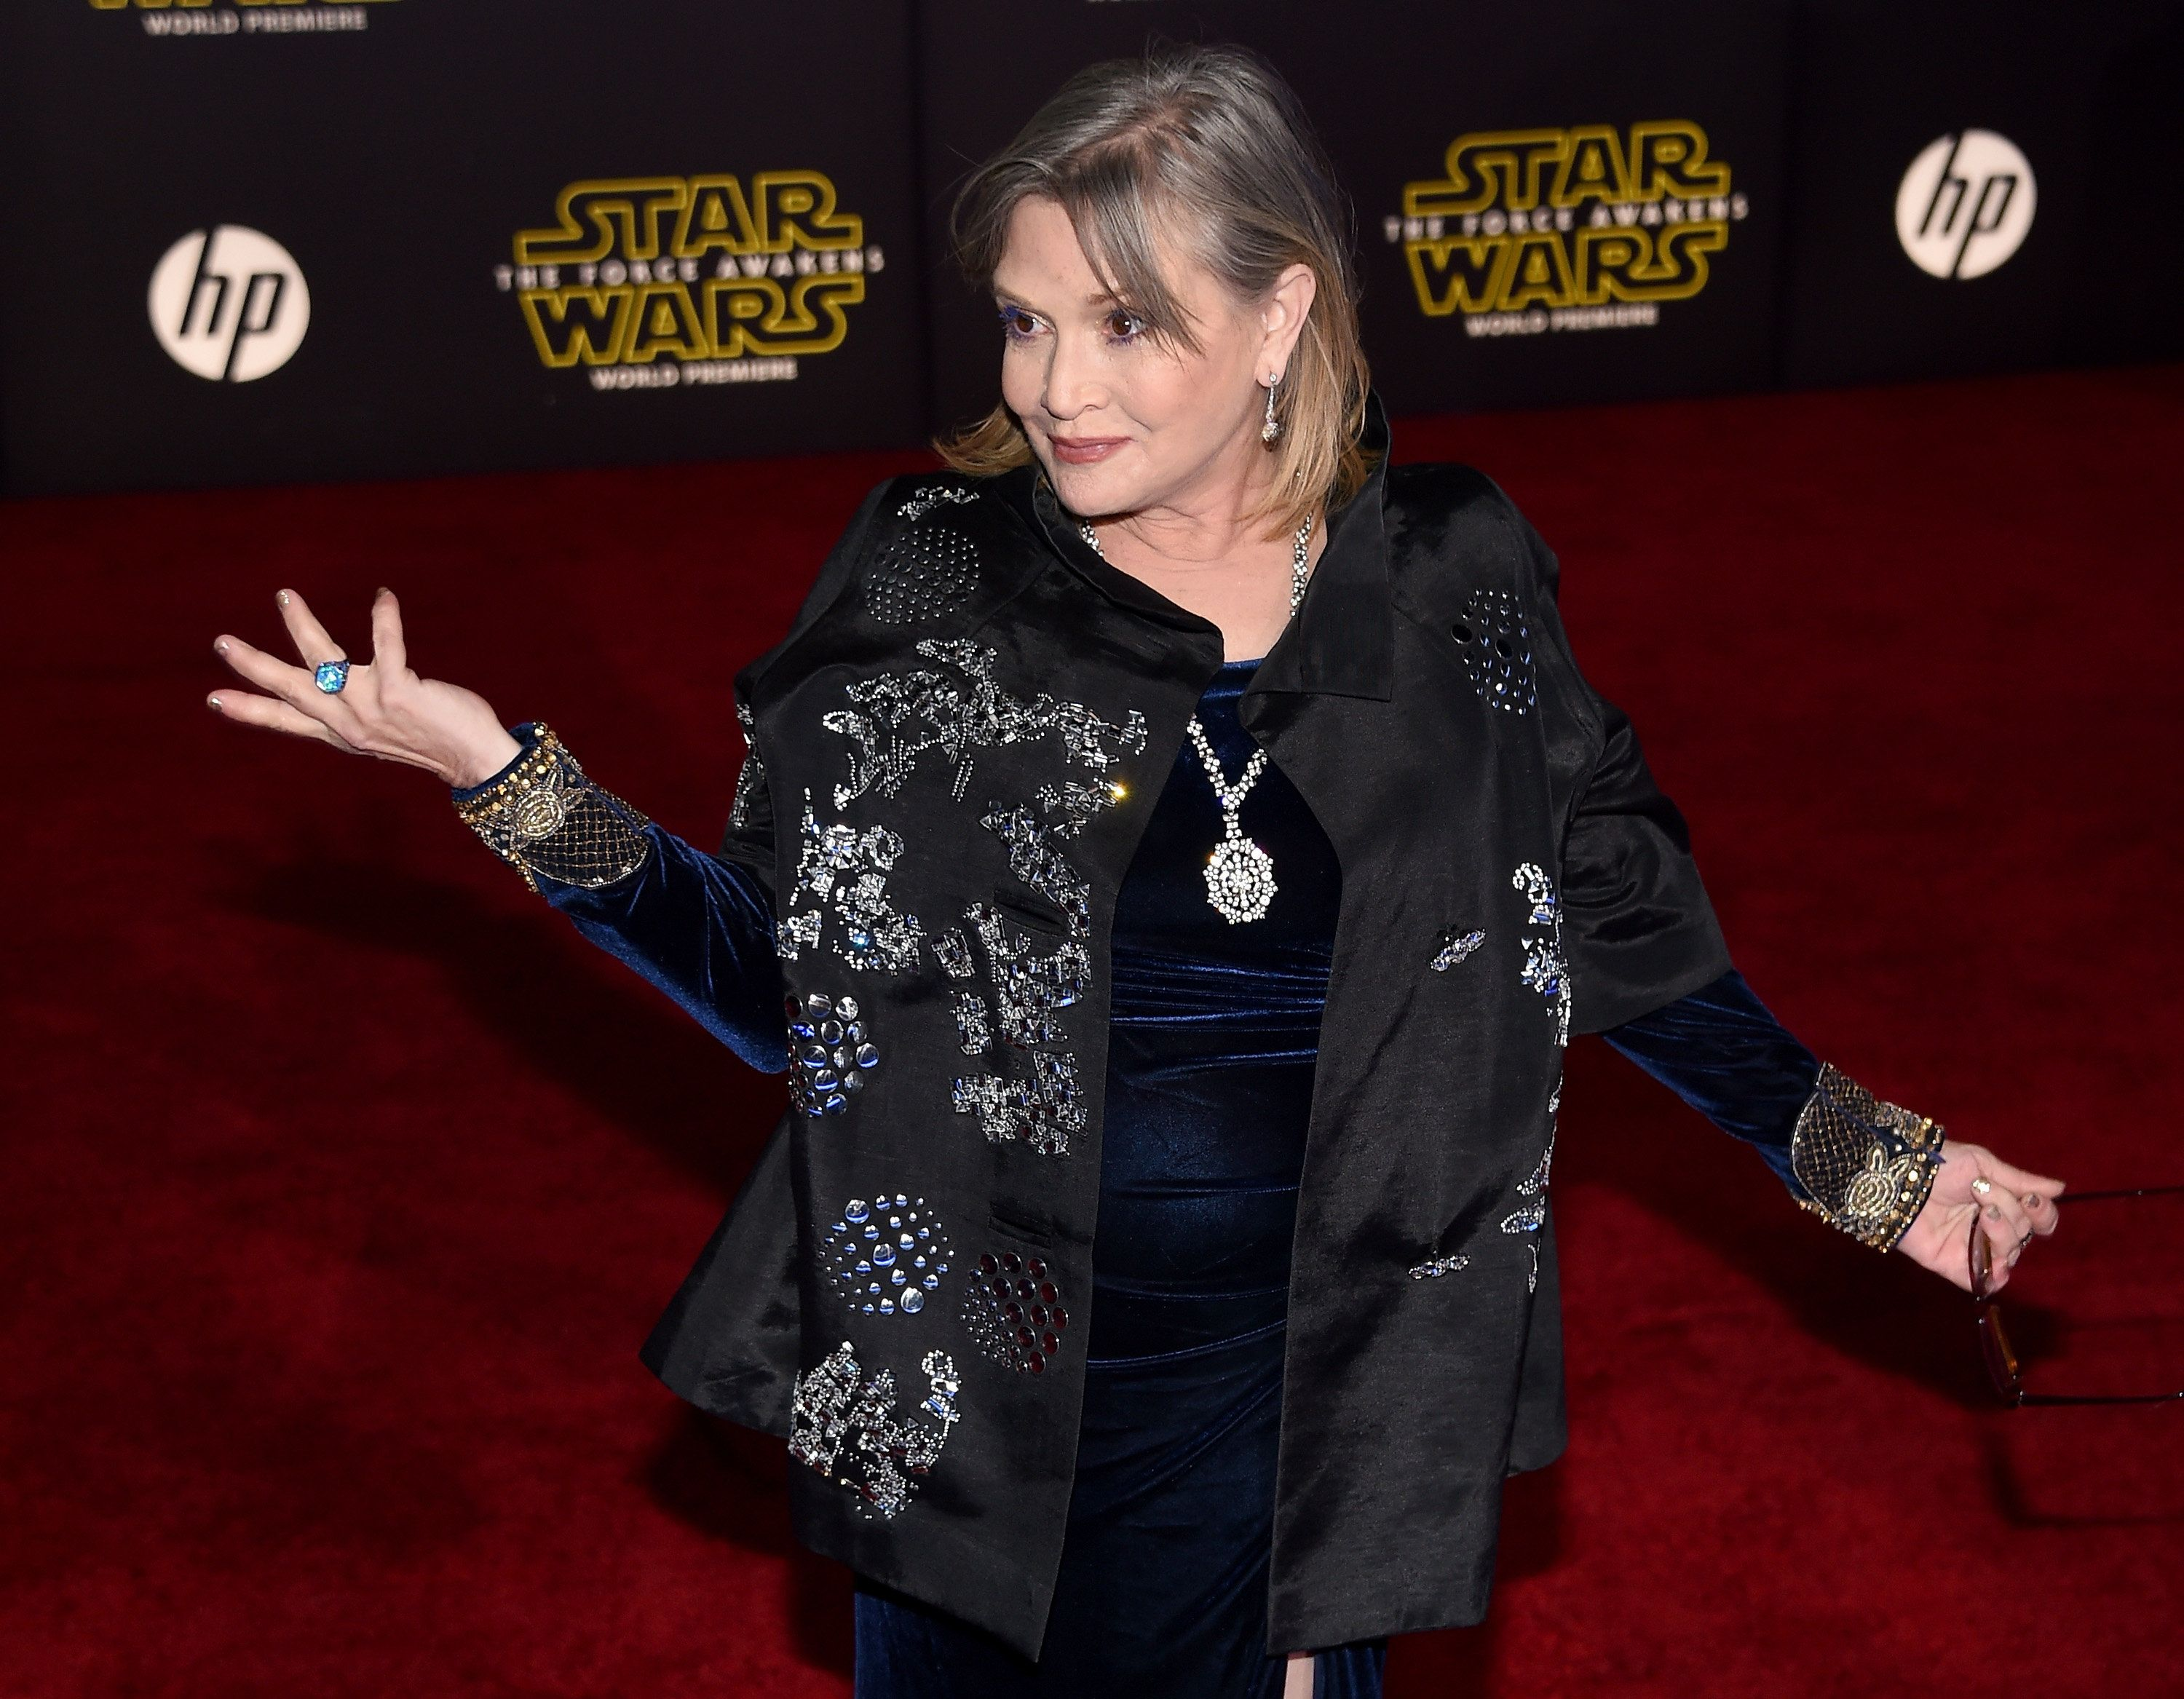 HOLLYWOOD, CA - DECEMBER 14:  Actress Carrie Fisher attends the premiere of Walt Disney Pictures and Lucasfilm's 'Star Wars: The Force Awakens' at the Dolby Theatre on December 14, 2015 in Hollywood, California.  (Photo by Ethan Miller/Getty Images)